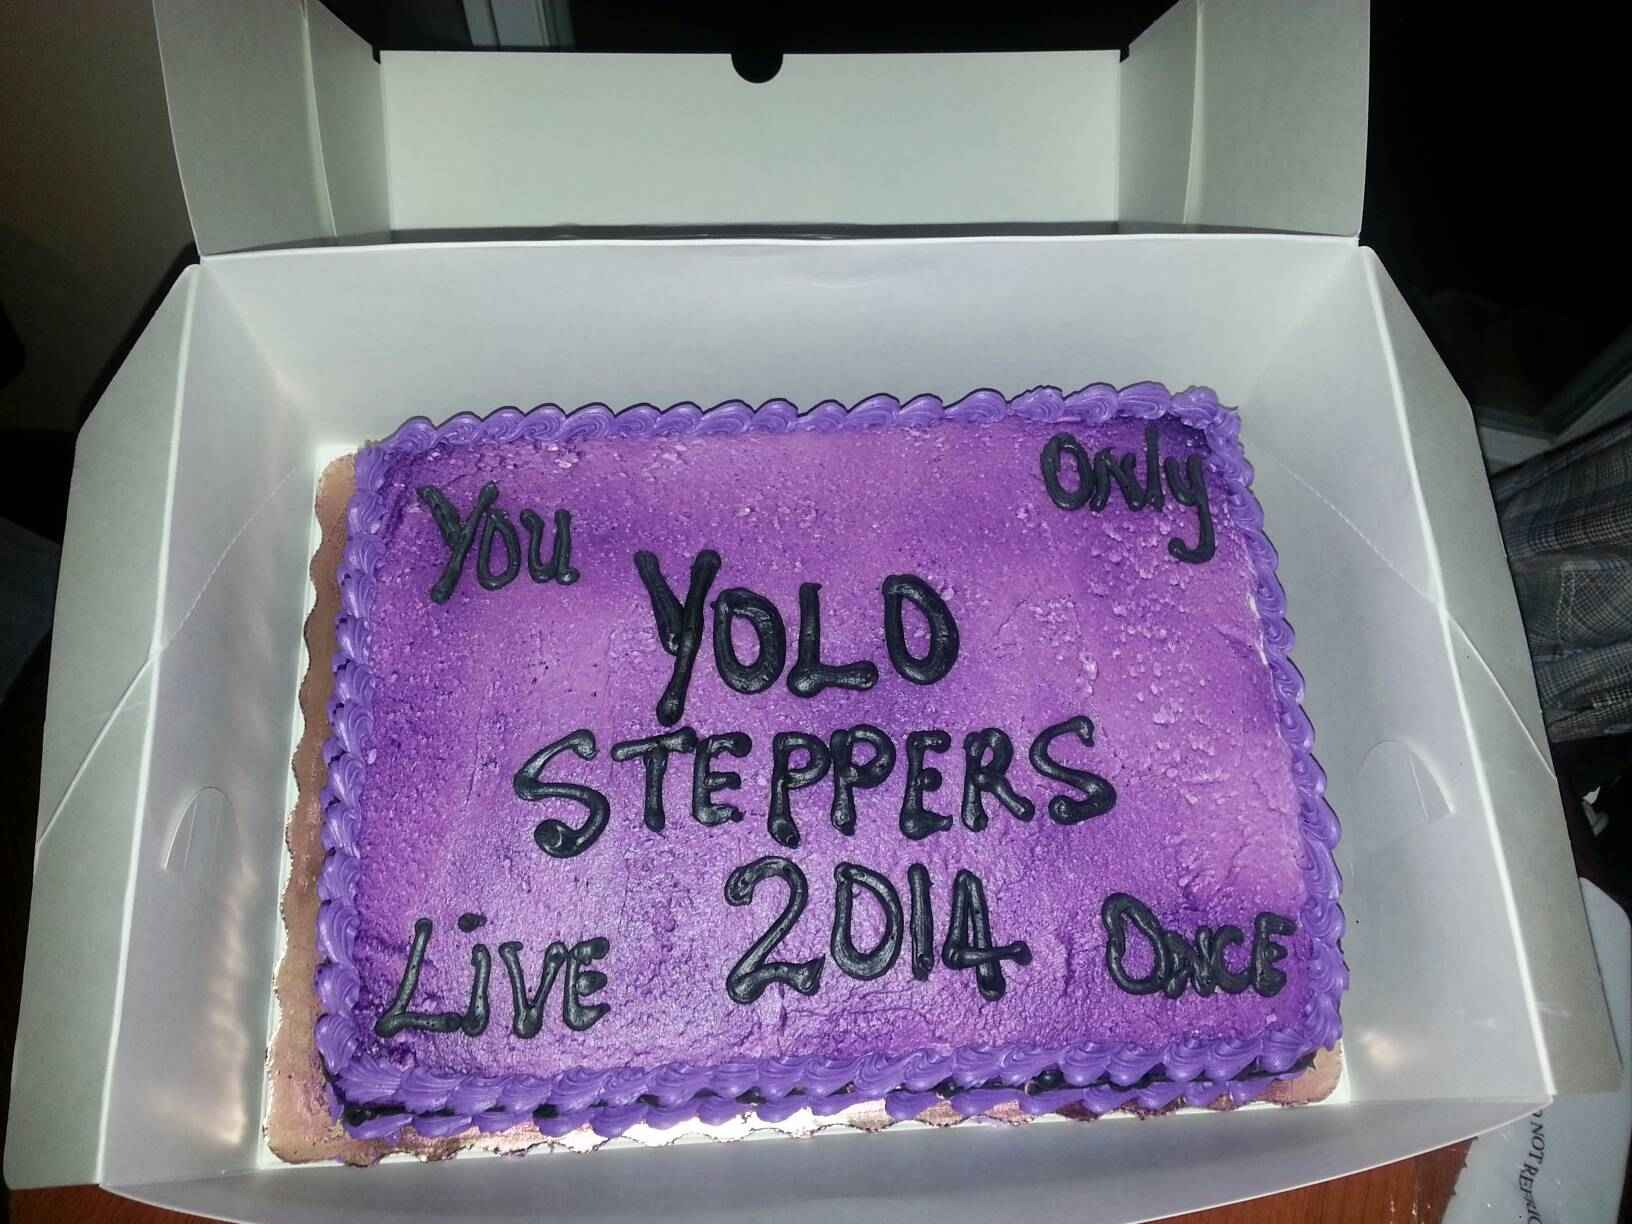 Yolo Steppers Sweet Tooth